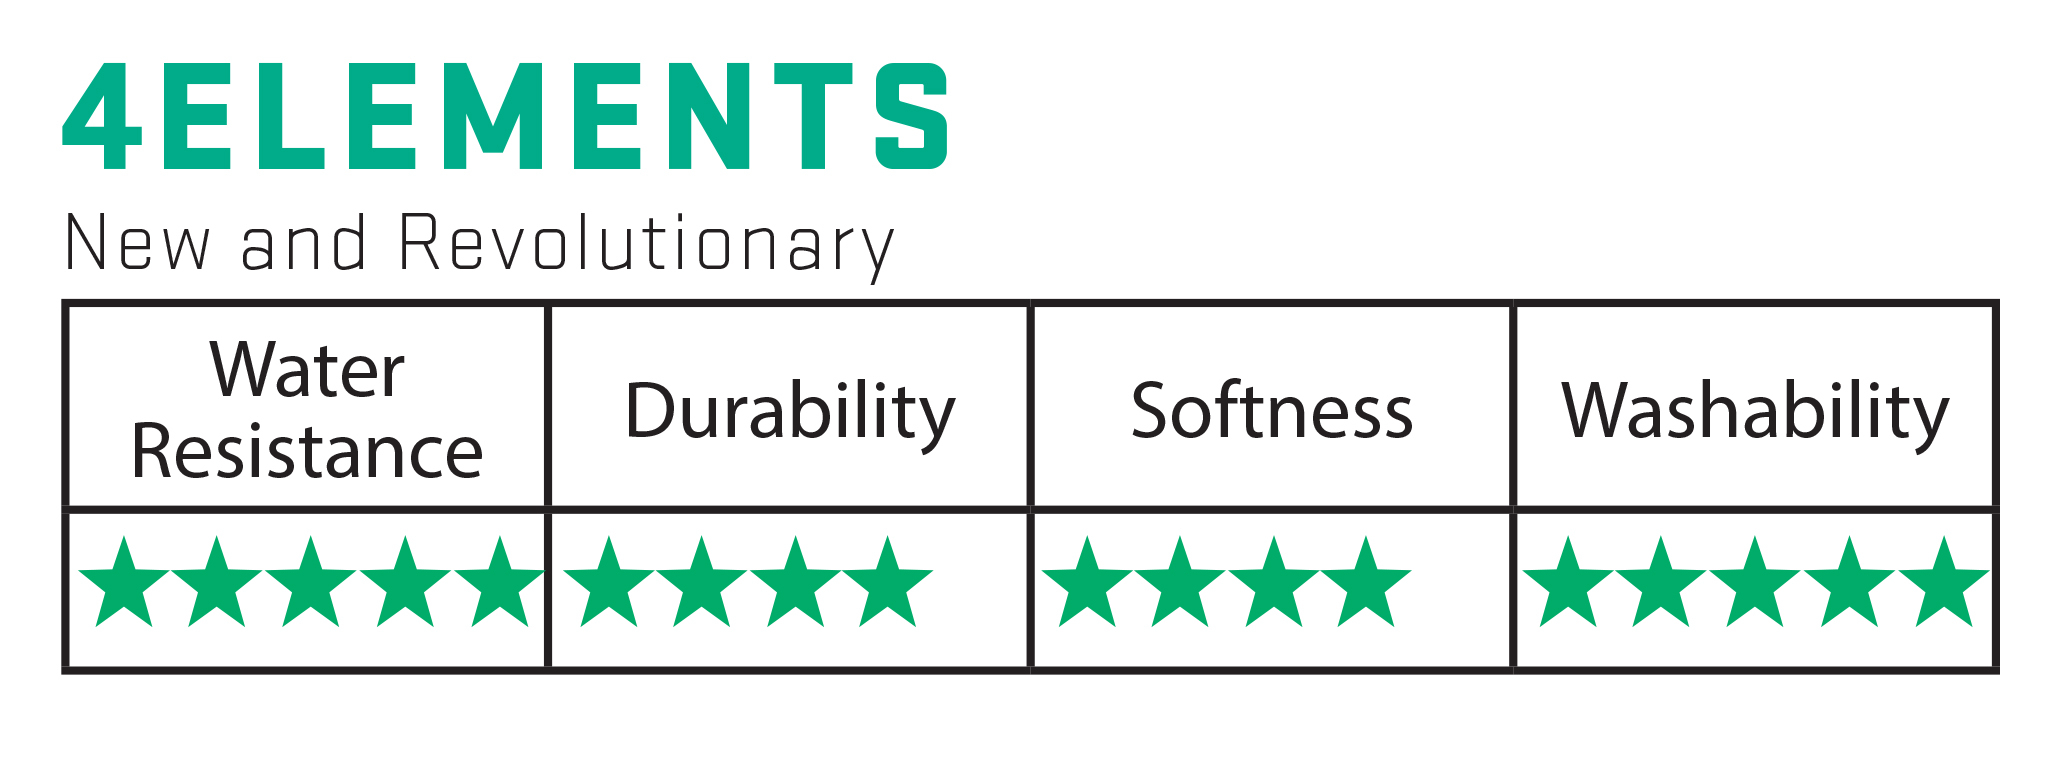 4 ELEMENTS Star Rating